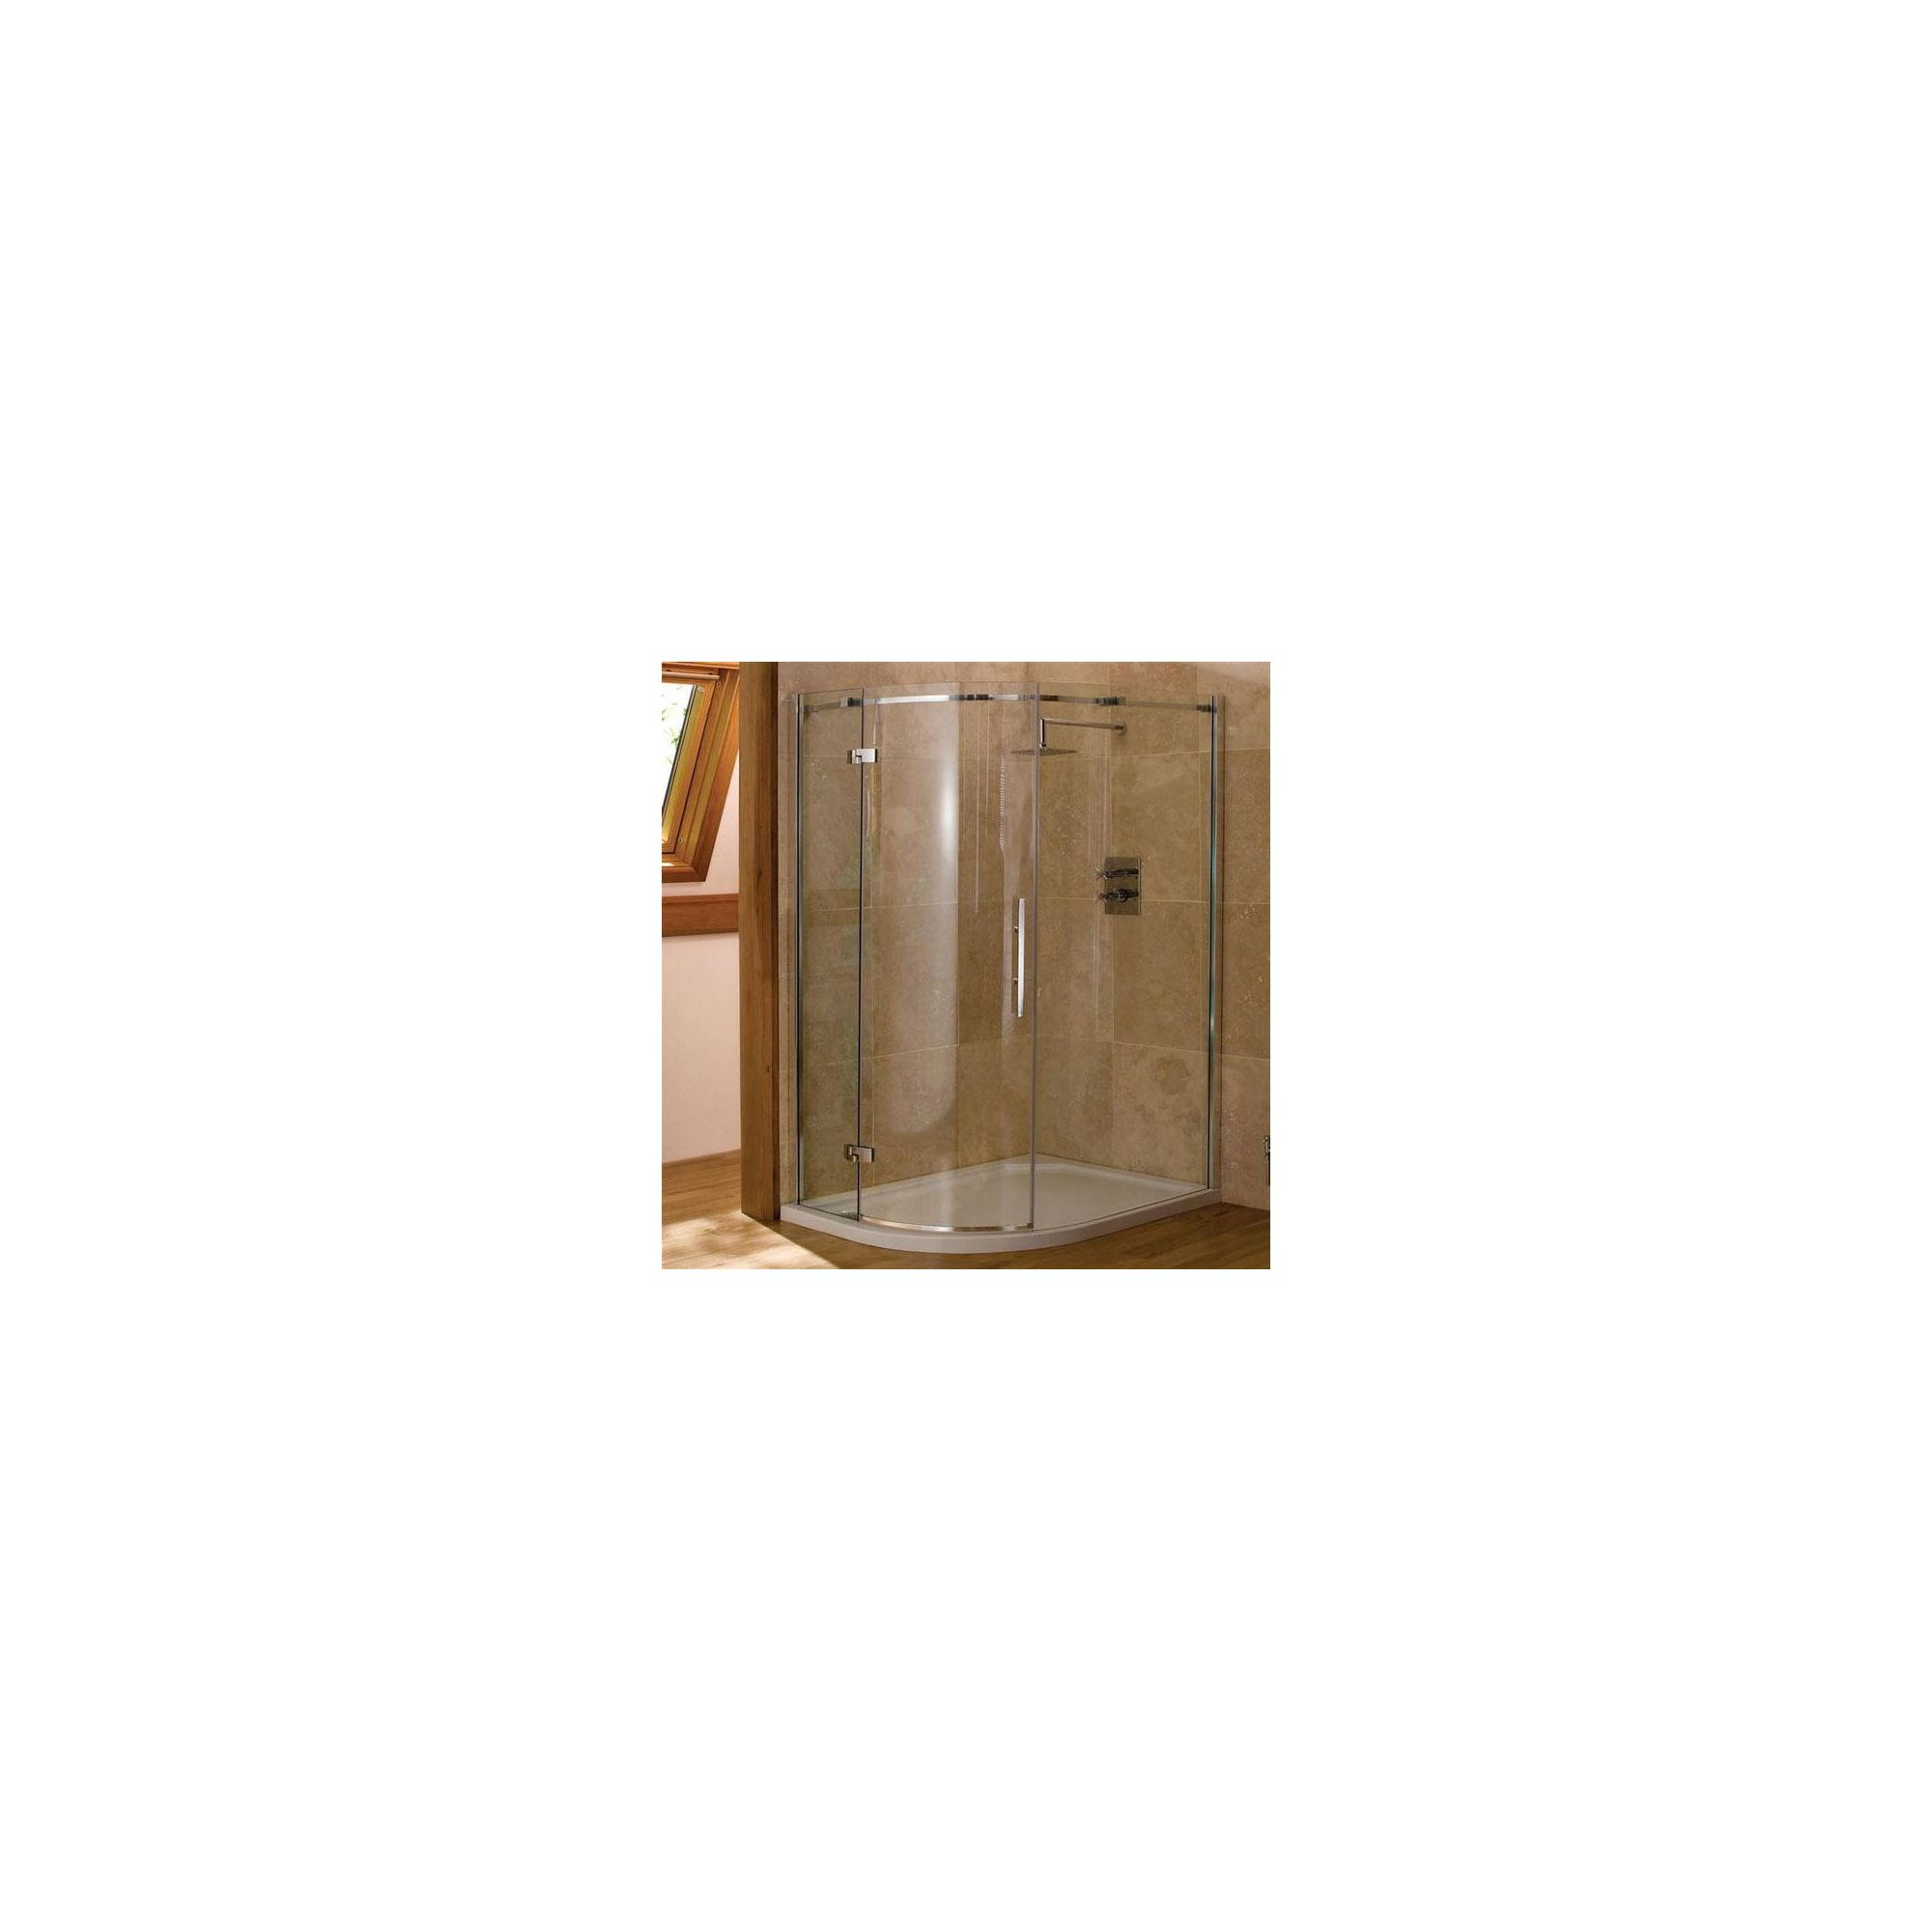 Merlyn Vivid Nine Offset Quadrant Shower Enclosure, 900mm x 760mm, Right Handed, Low Profile Tray, 8mm Glass at Tesco Direct